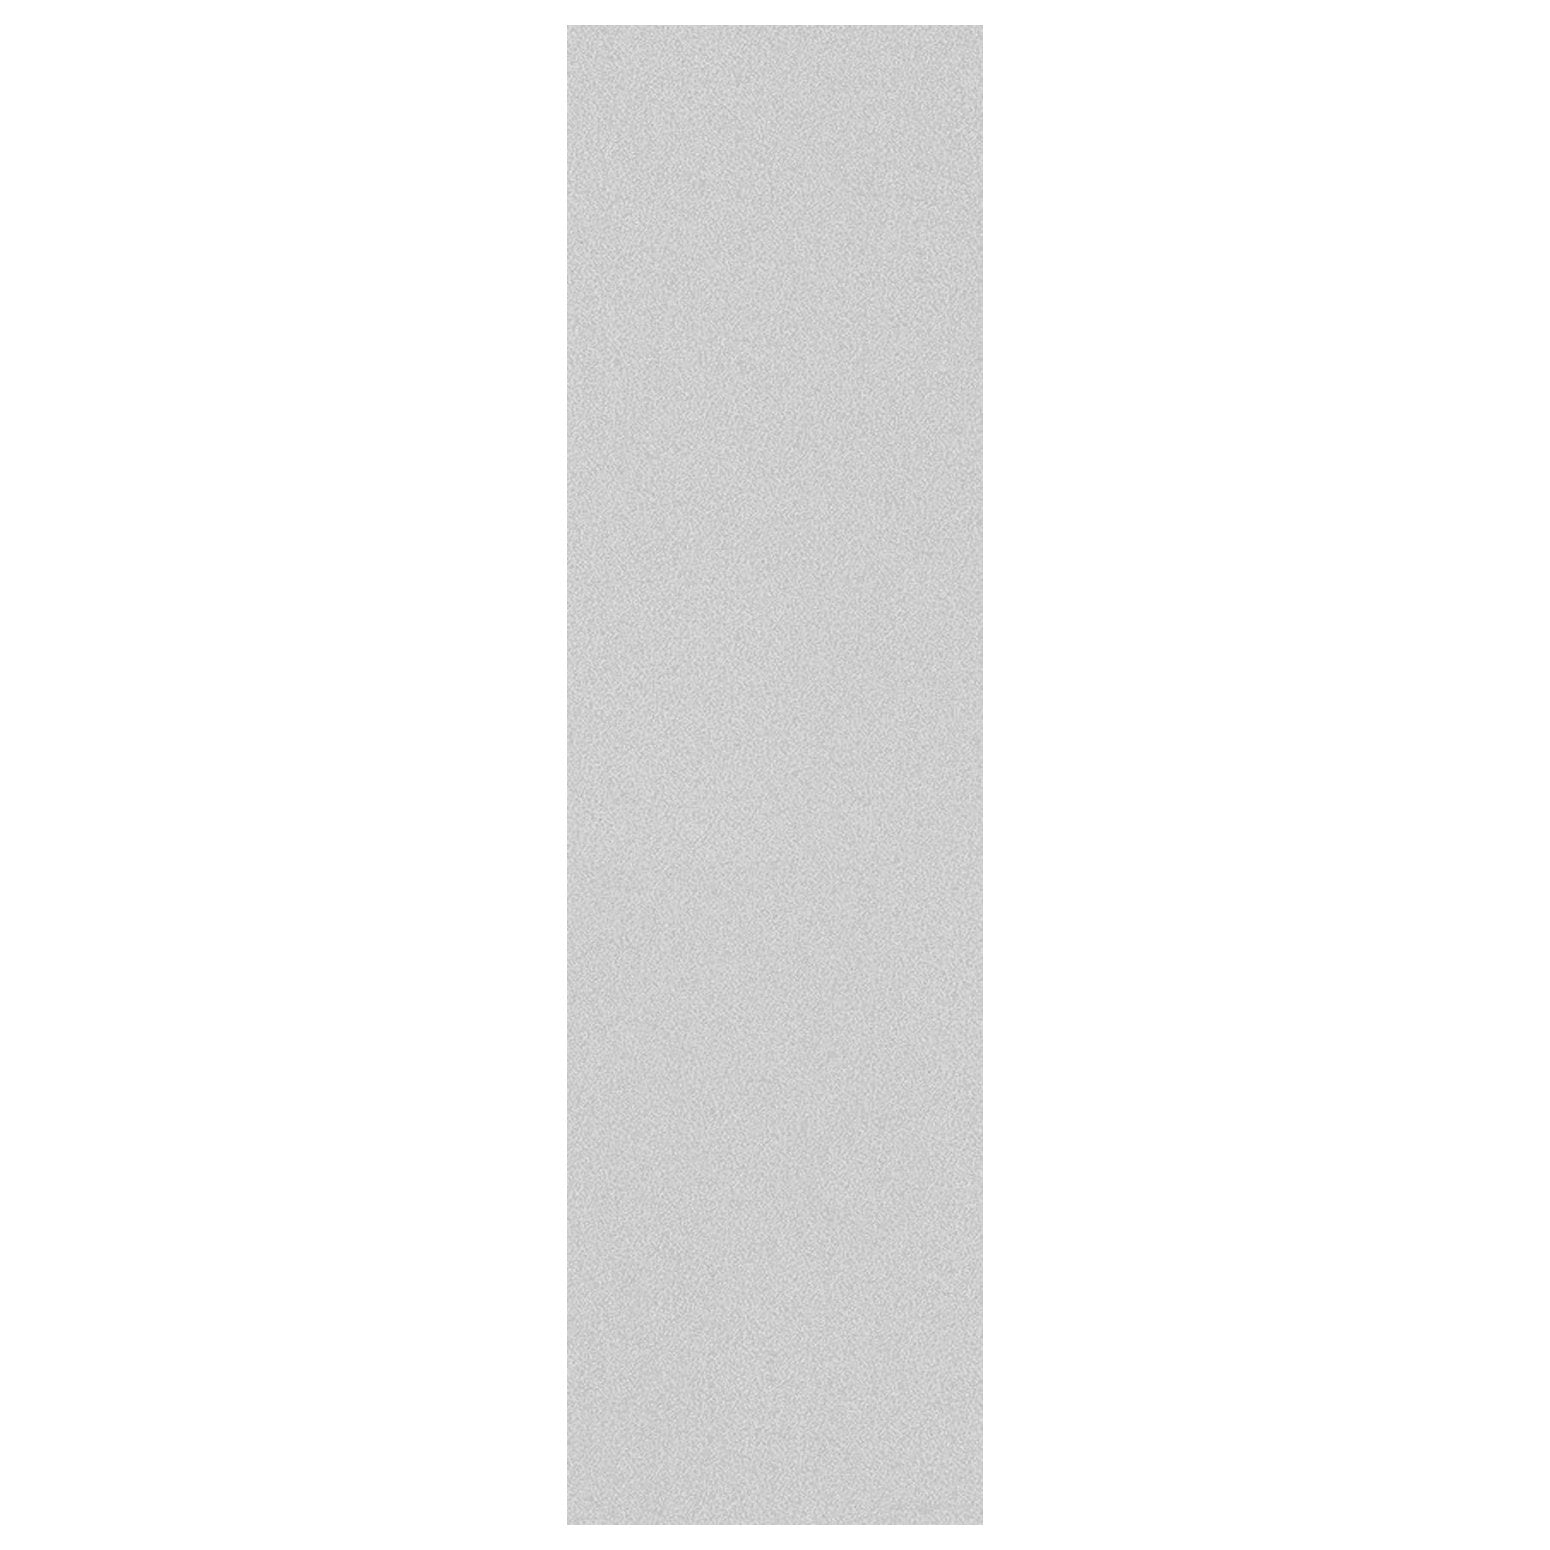 Jessup Griptape Sheet Clear 9""